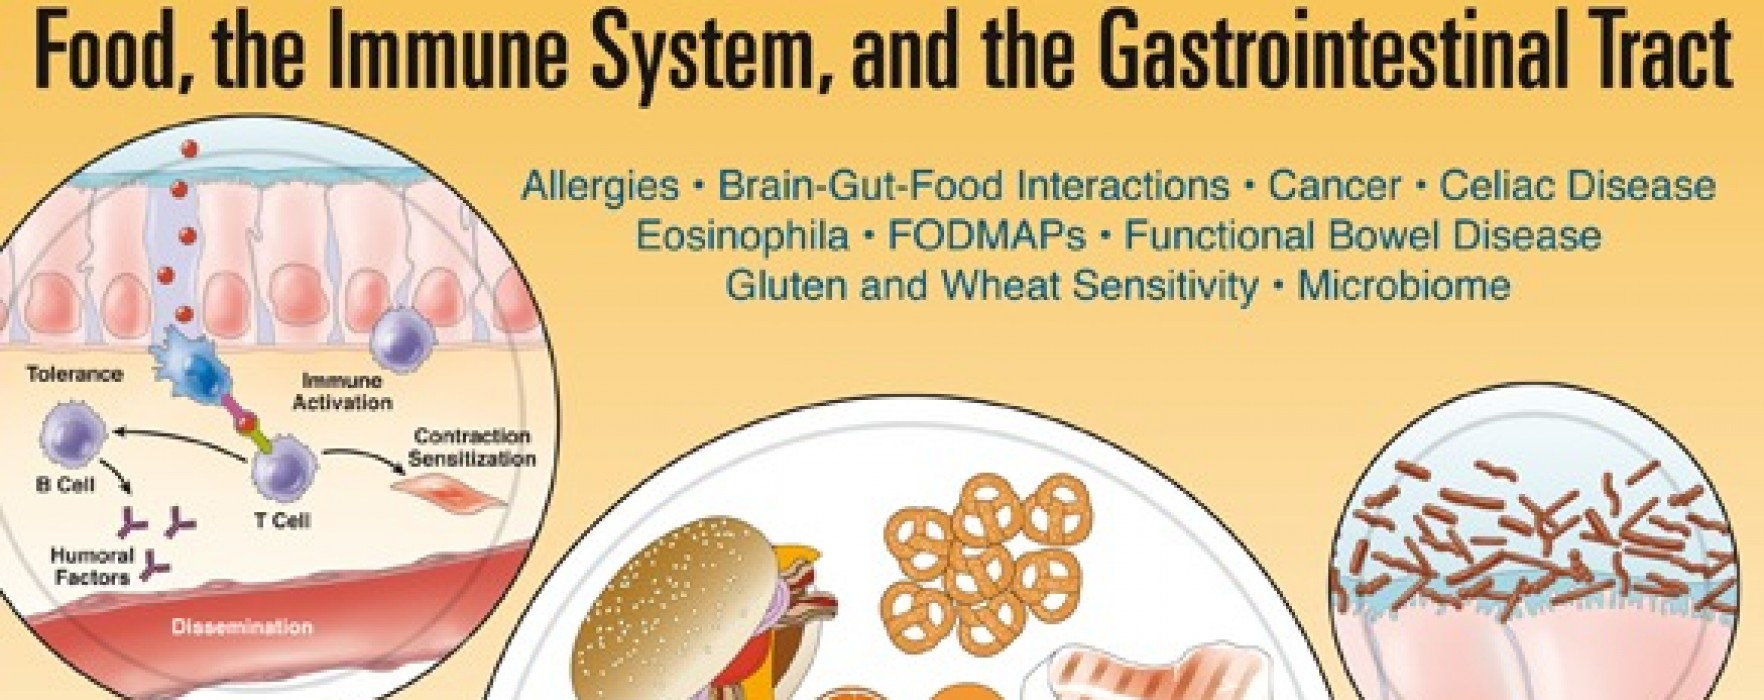 Special Issue: Food, the Immune System, and the GI Tract